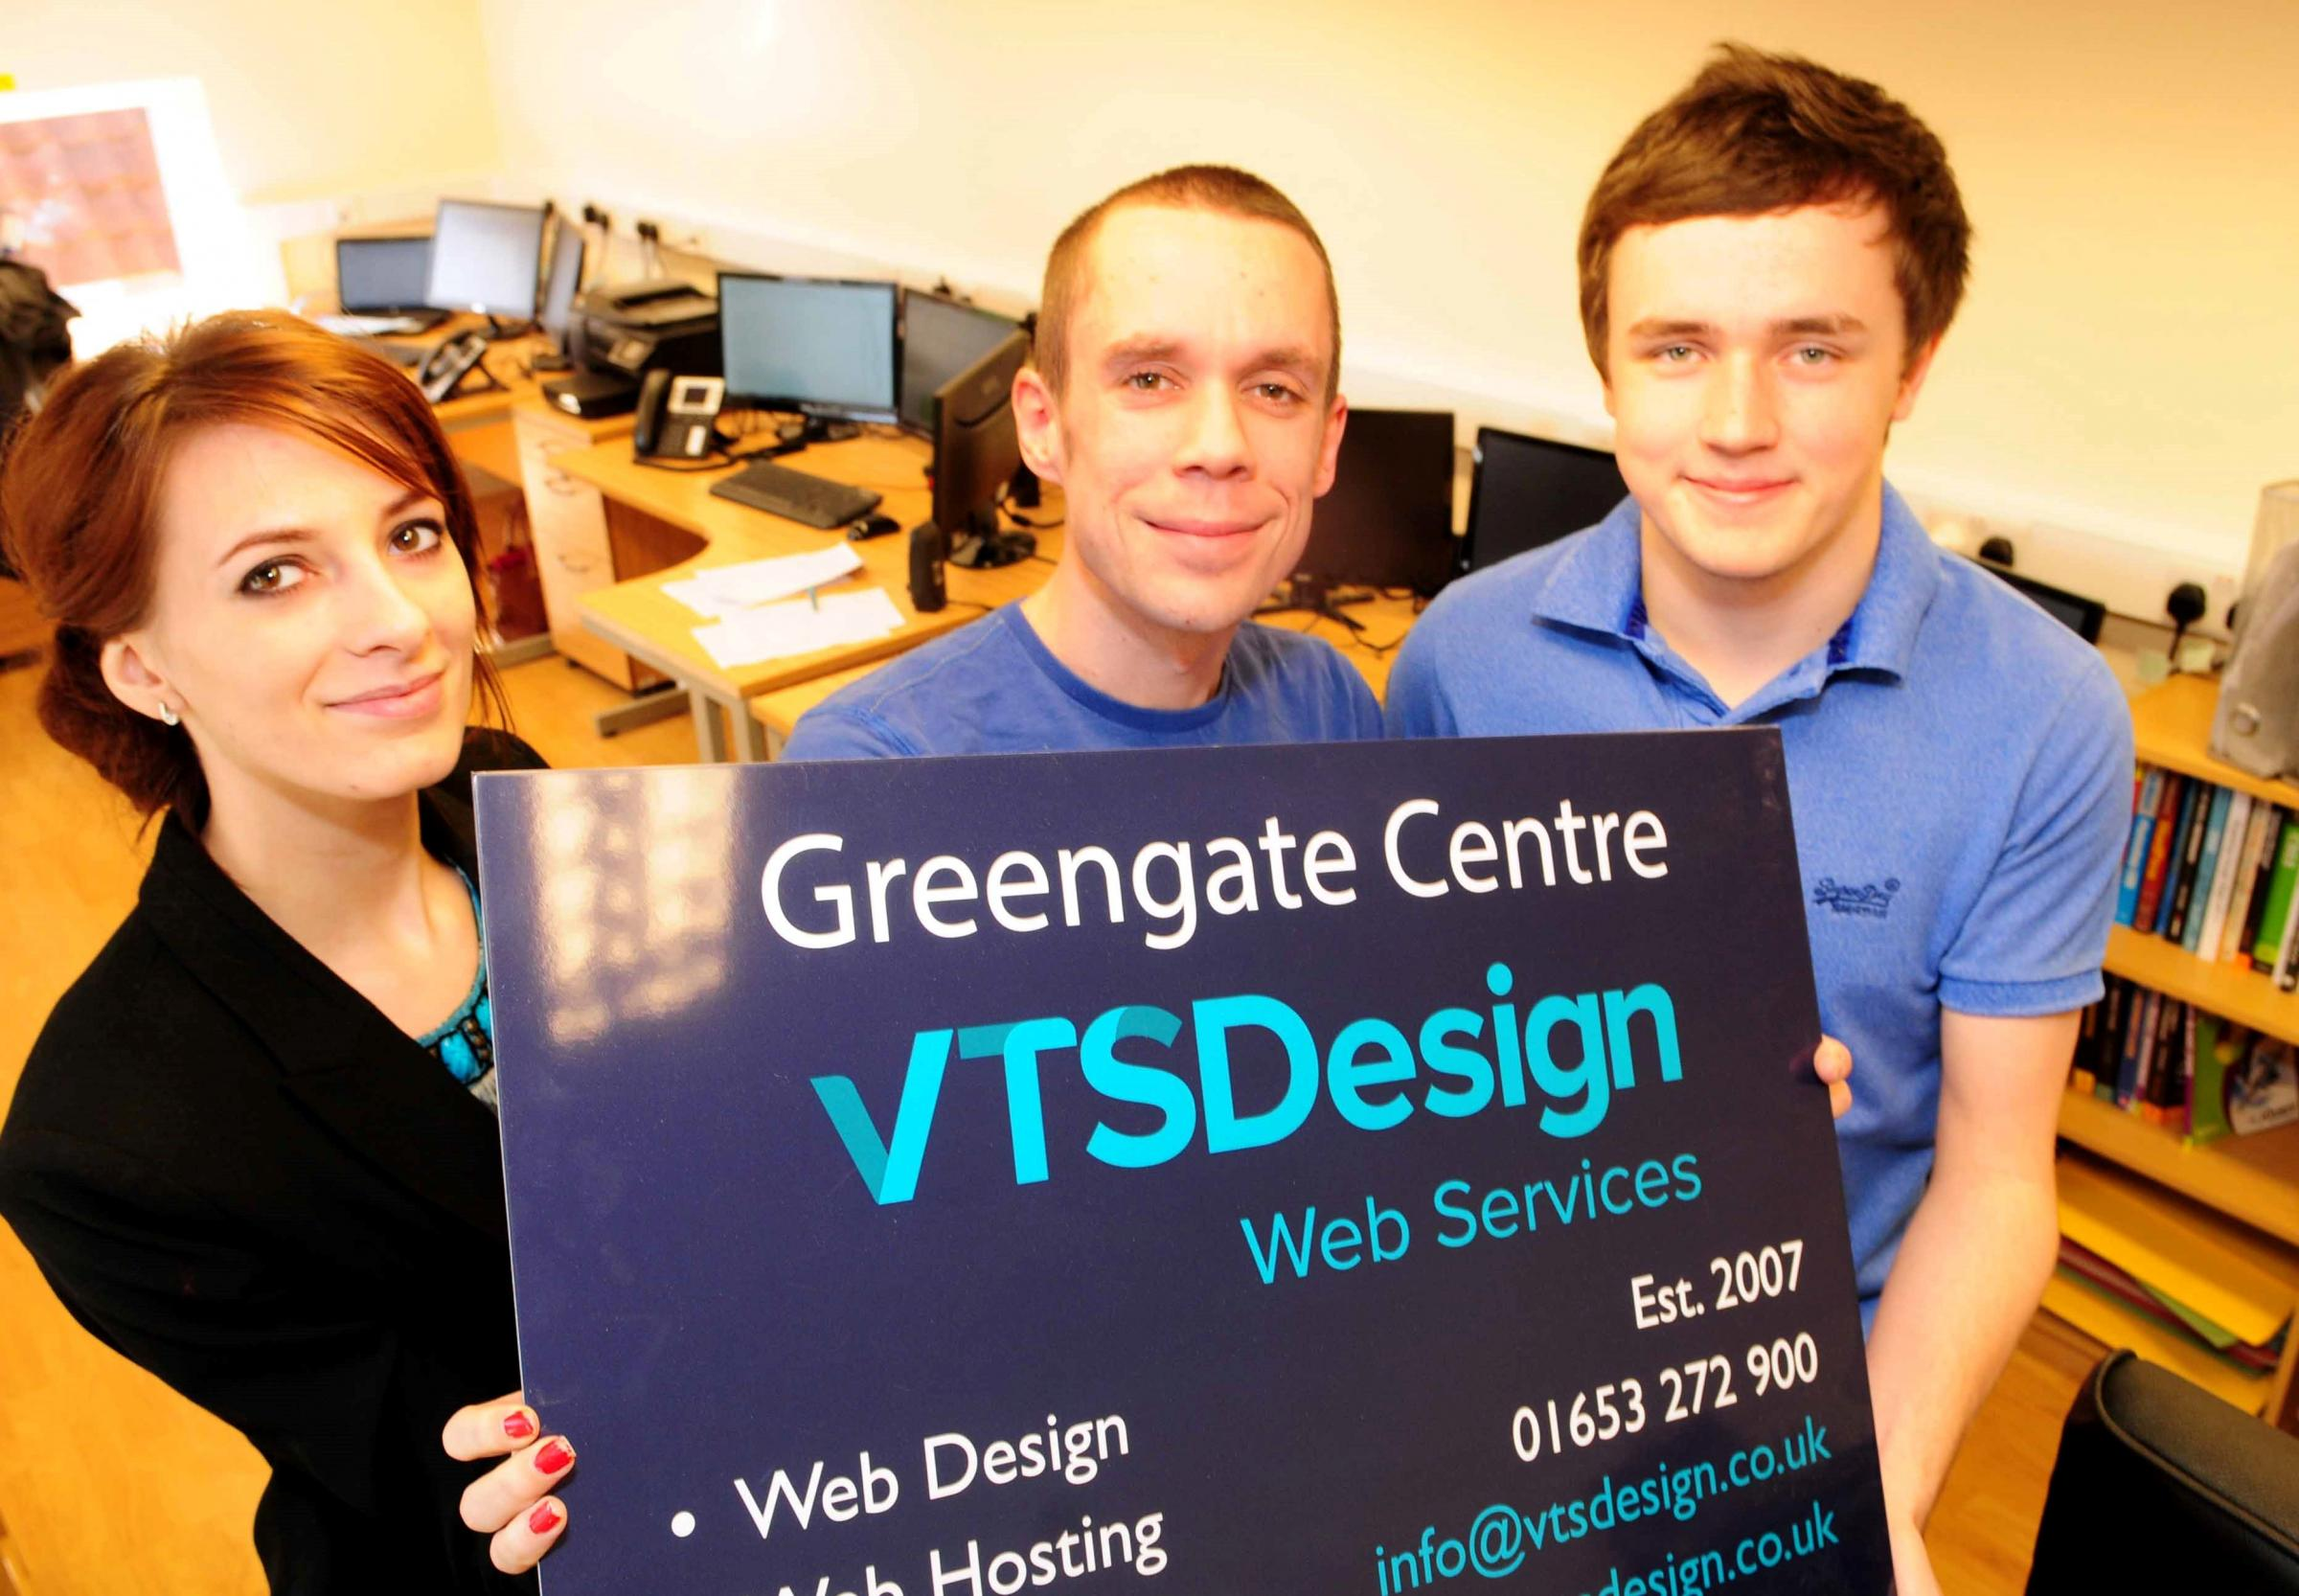 Martyna Swies, Mark Foster and Bradley Train of VTS Design celebrate moving in to their larger premises in Malton